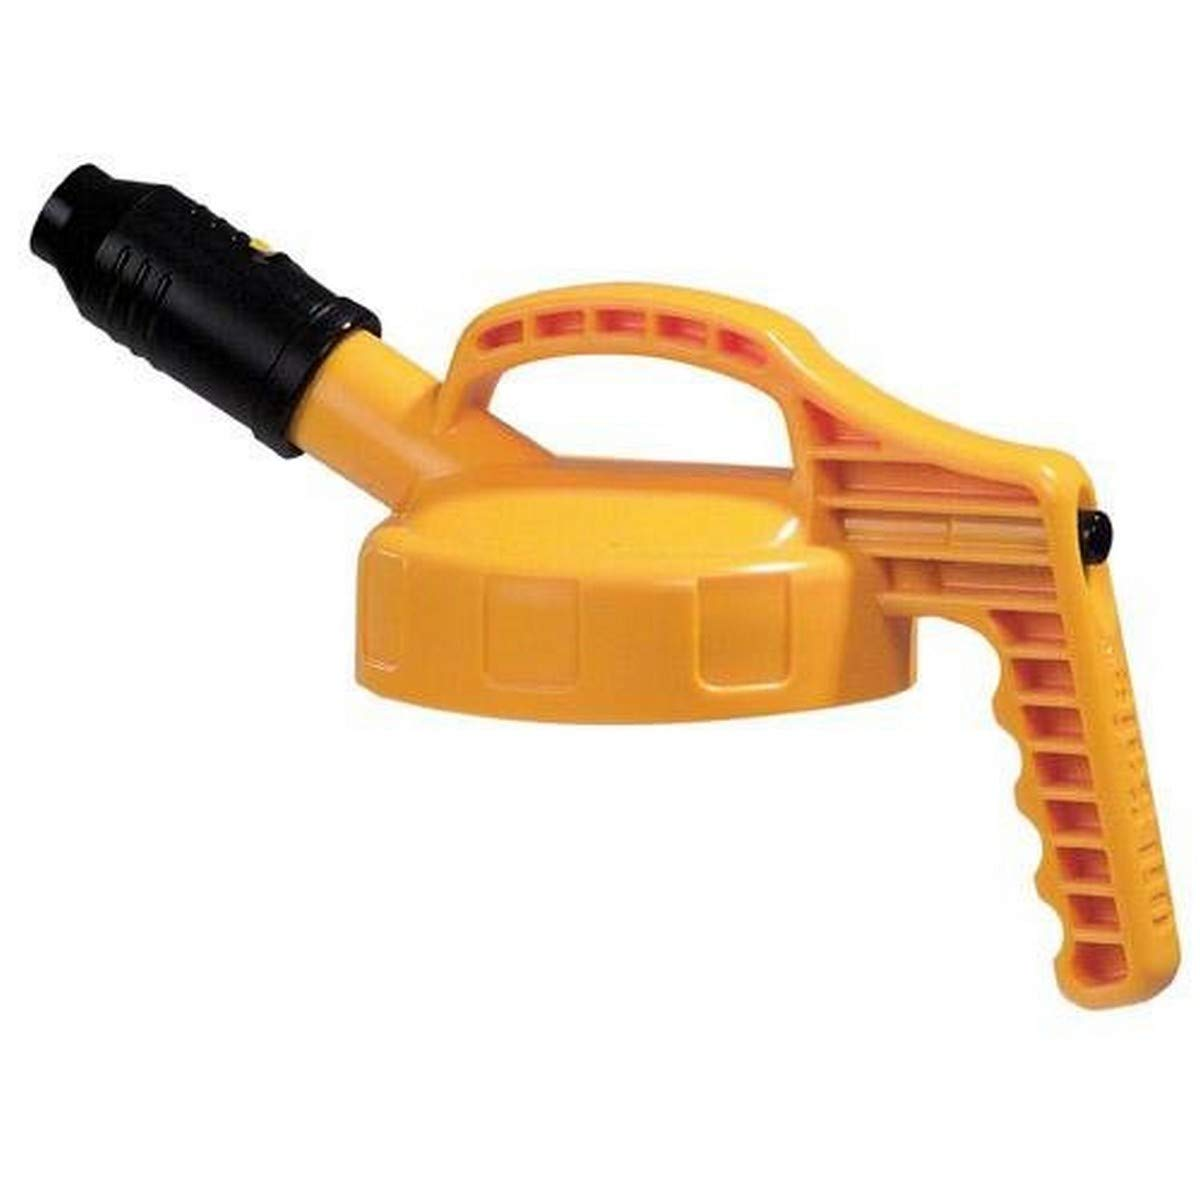 Oil Safe Stumpy Spout Lid - Industrial Grade   Heat-resistant   High Lubricant Flow   Ultra-durable construction   10 Different Colors - Yellow